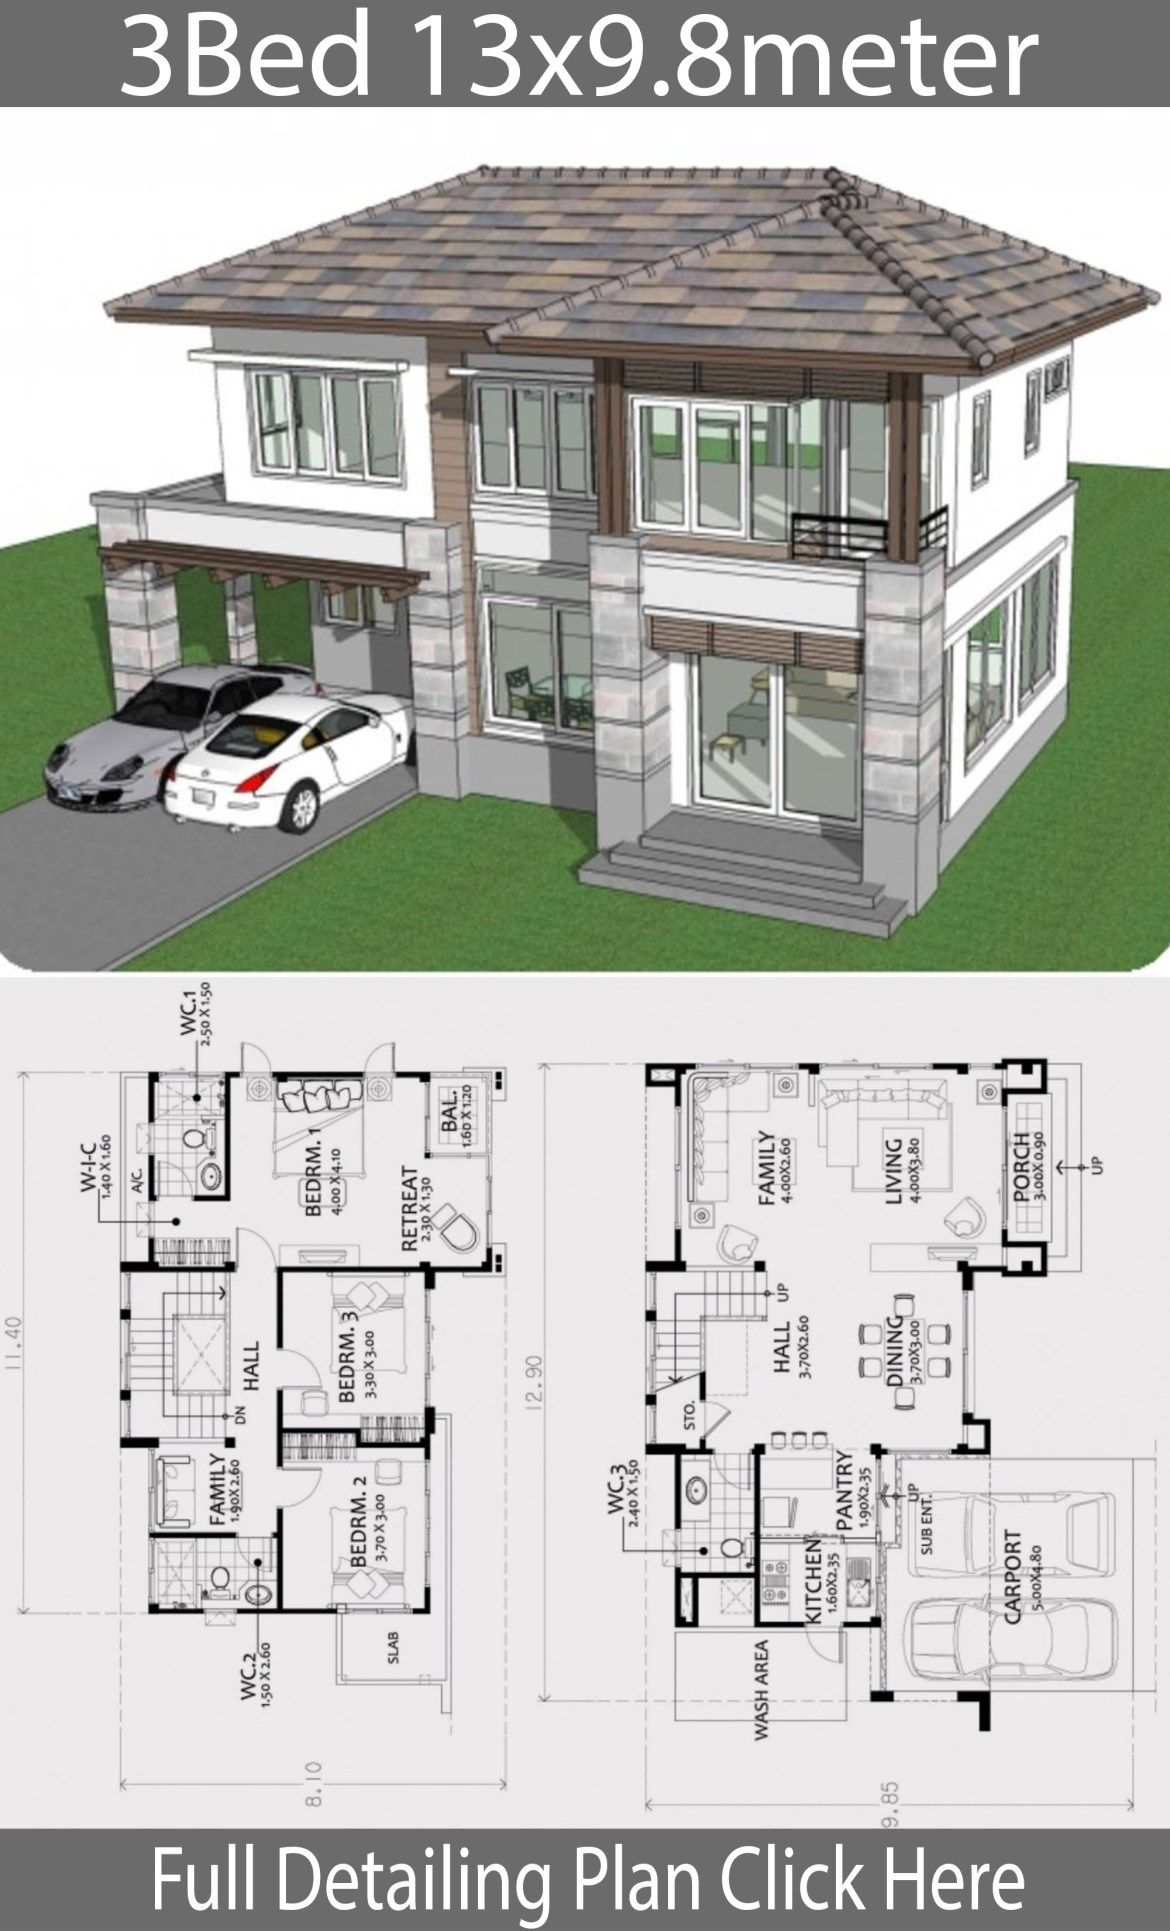 Home Design Plan 13x9 8m With 3 Bedrooms Home Design With Plansearch Beautiful House Plans Contemporary House Plans House Construction Plan